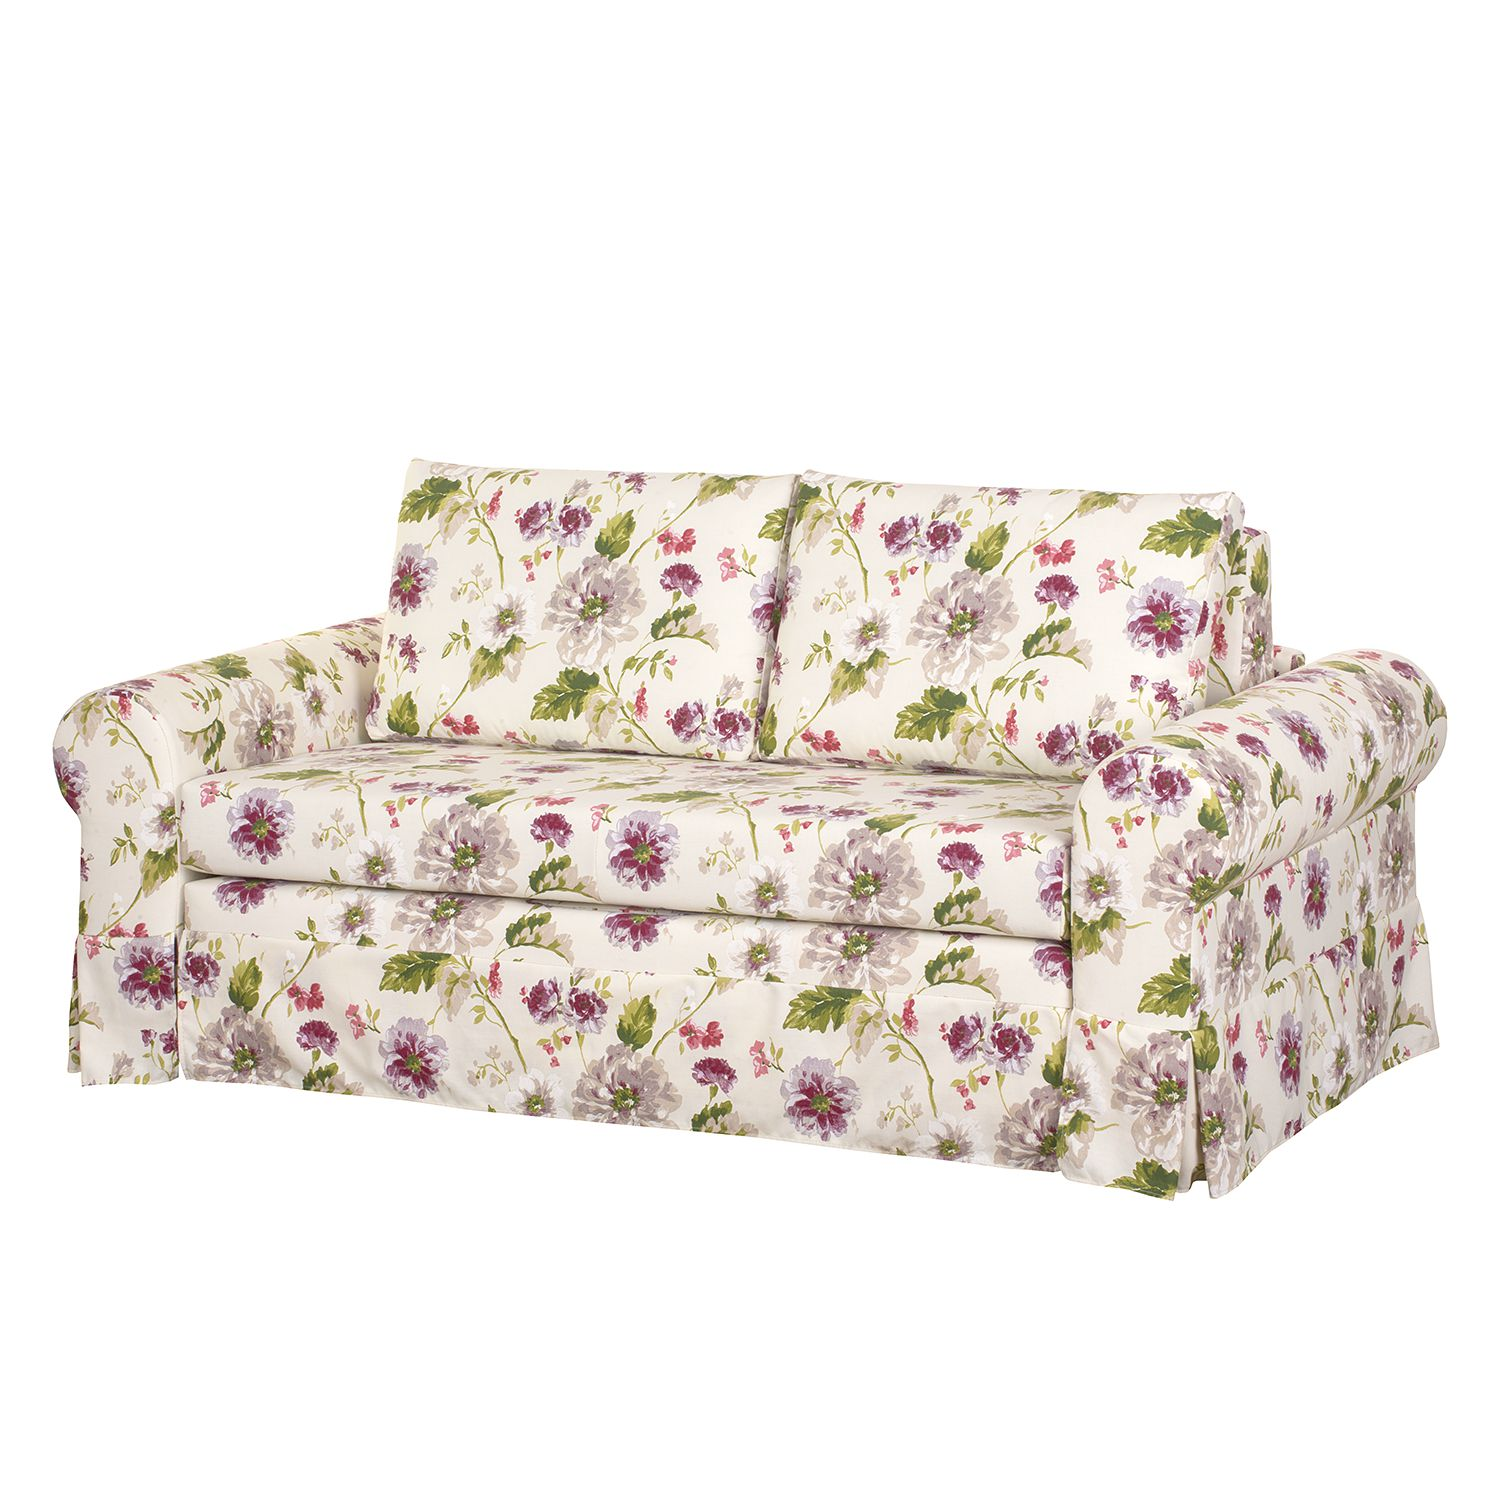 Bettsofa Home24 Schlafsofa Latina